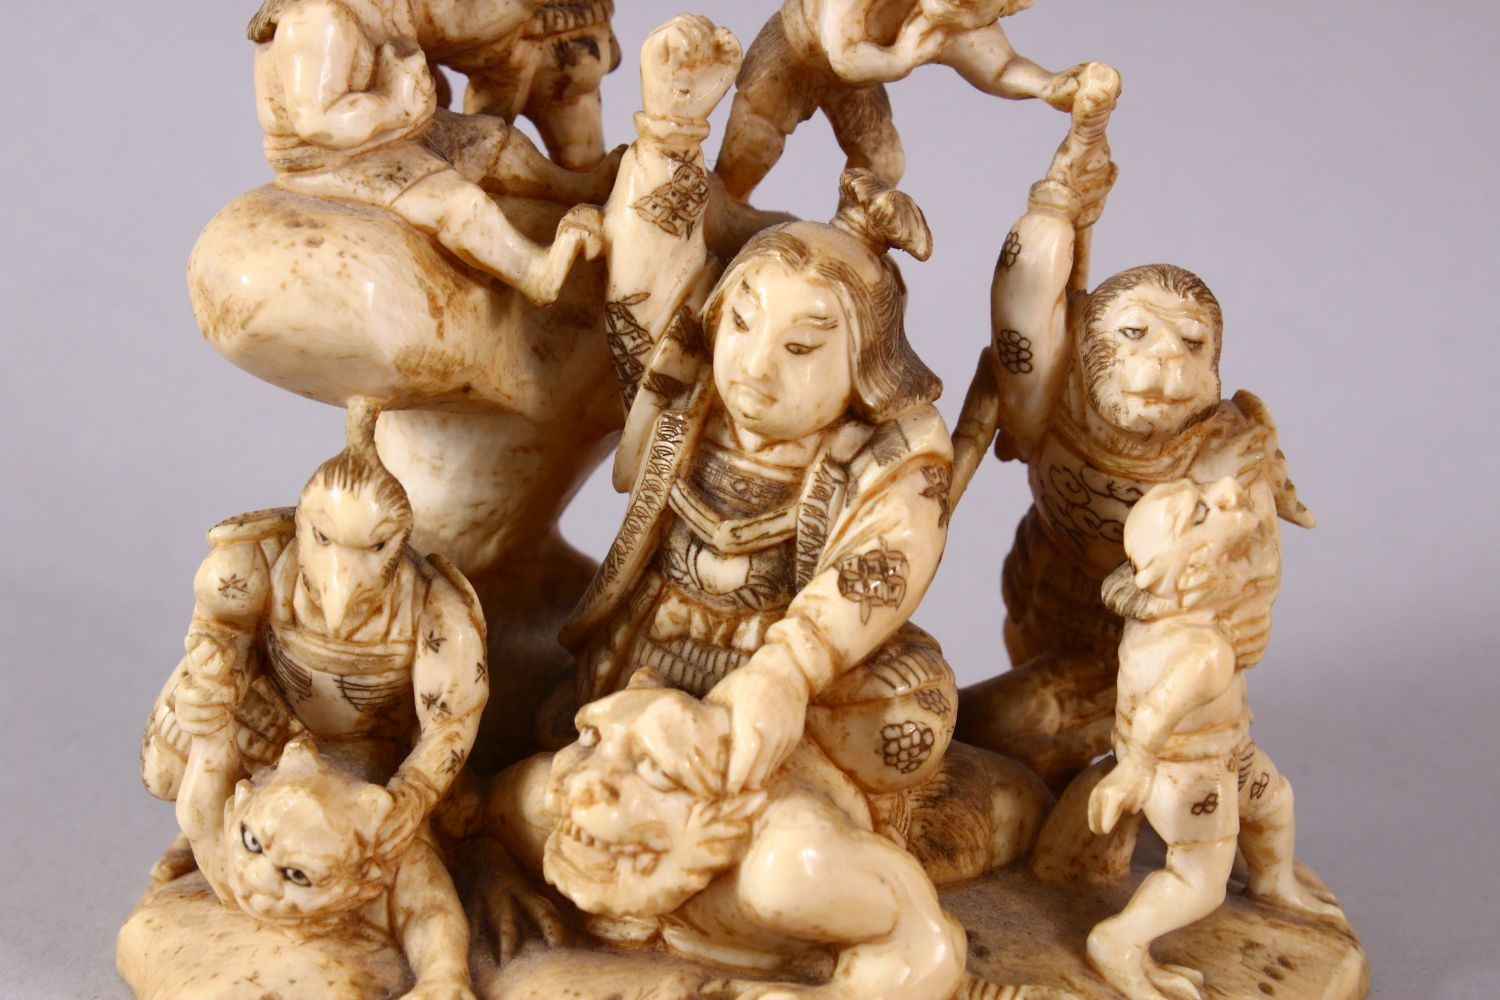 A JAPANESE MEIJI PERIOD CARVED IVORY OKIMONO GROUP - depicting figures attacking oni demons, one dog - Image 2 of 14